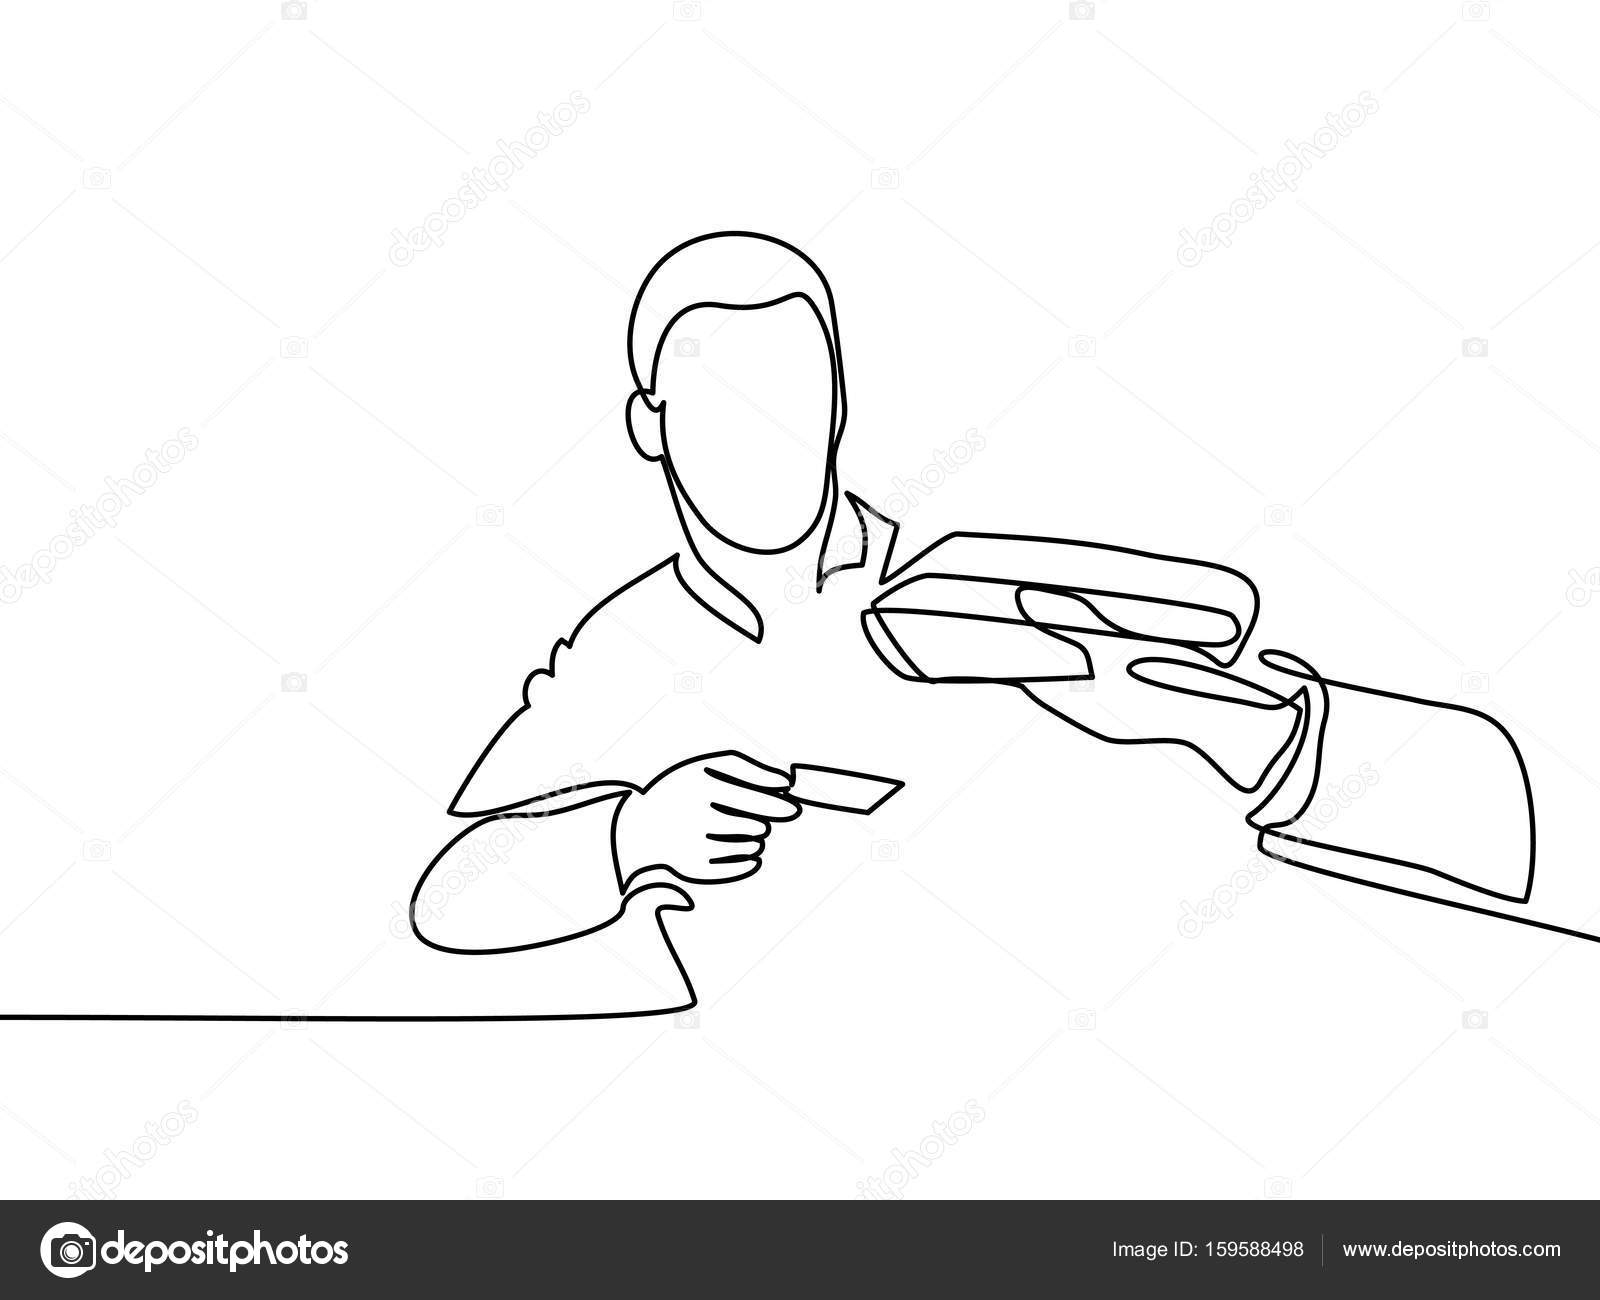 1600x1300 Man Entering Credit Card In Swipe Machine. Stock Vector